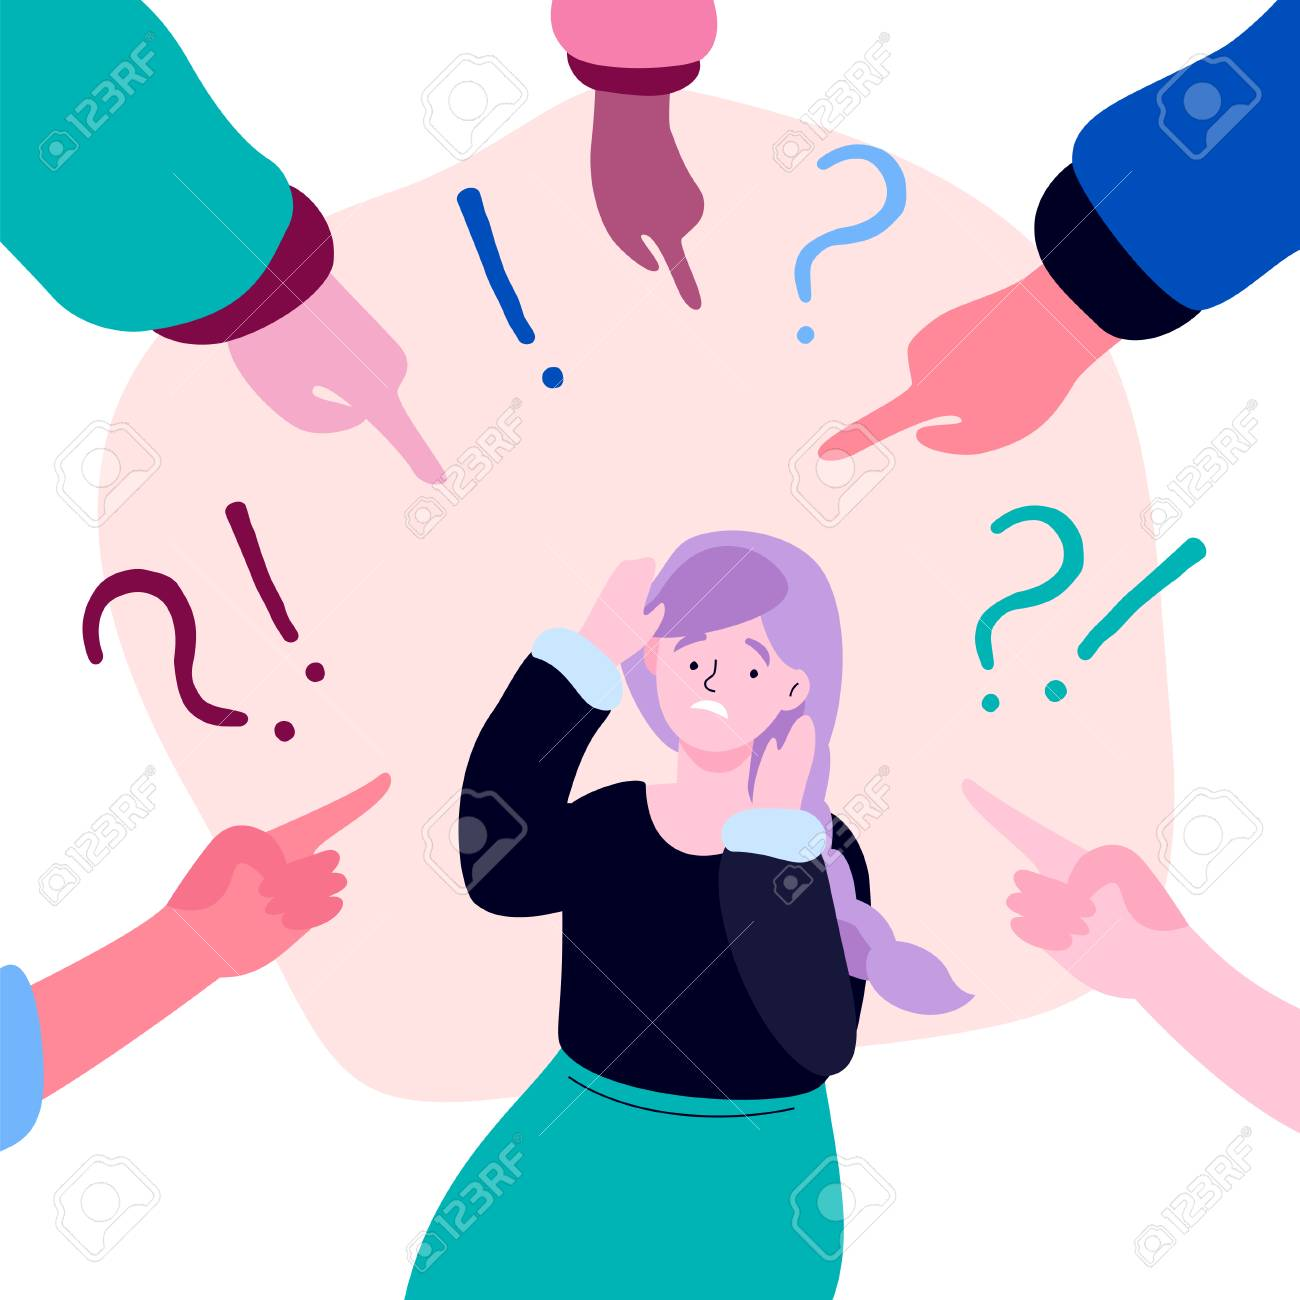 Shame - modern colorful flat design style illustration on white background. A composition with a sad girl feeling guilty or being bullied, fingers pointing at her, exclamation and question marks - 128175723